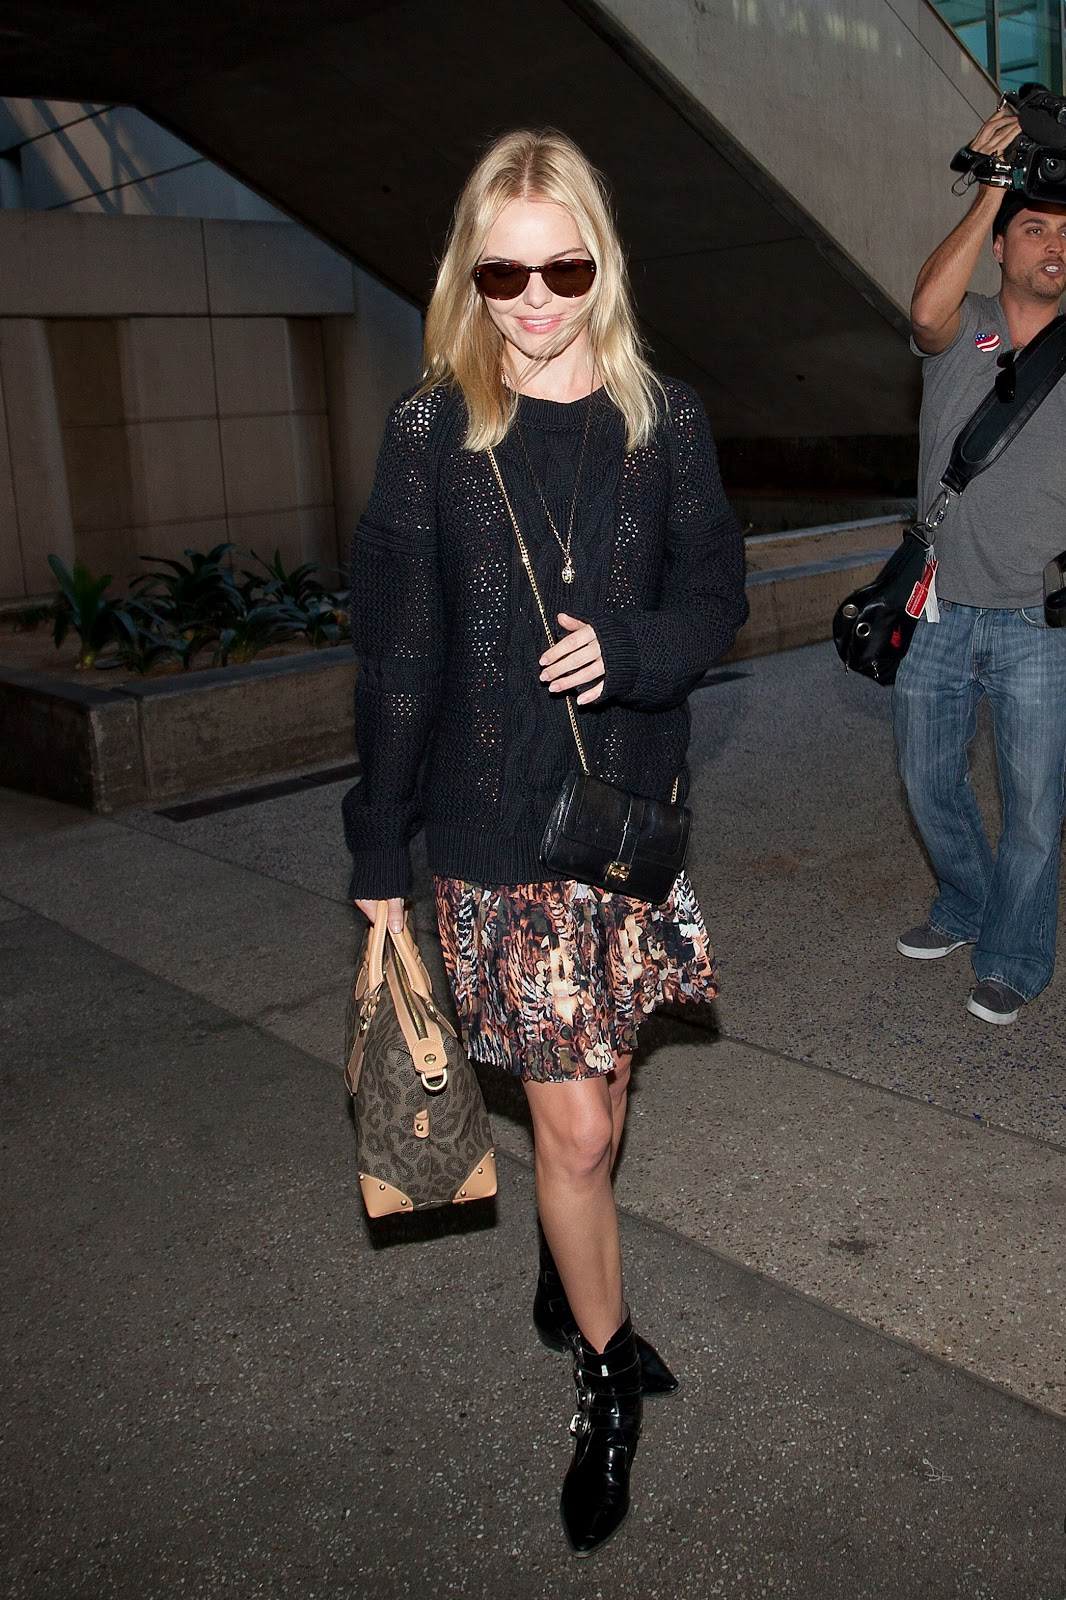 http://2.bp.blogspot.com/-_K84Ob1pVWE/T48MR3LOrDI/AAAAAAAAD48/IkZPneKG3gs/s1600/CU-Kate+Bosworth+arrives+at+LAX-04.JPG